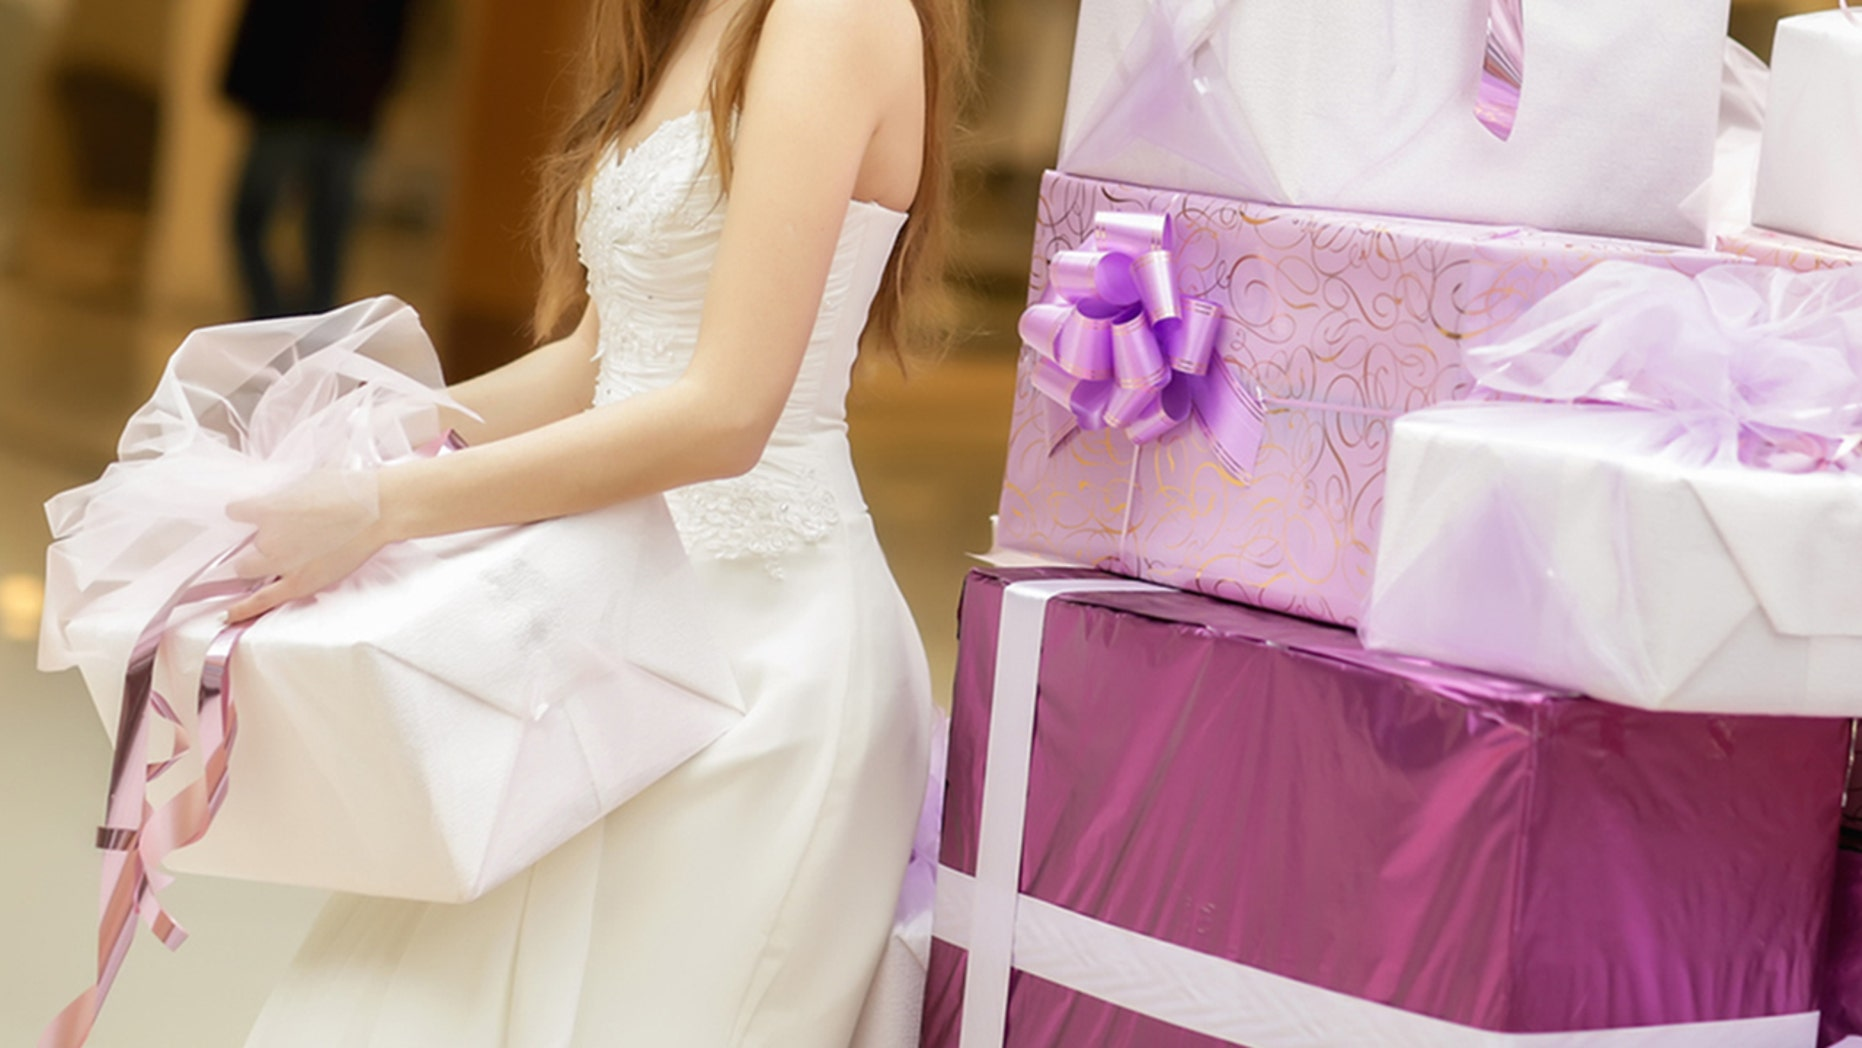 This bride was not pleased with her gifts.